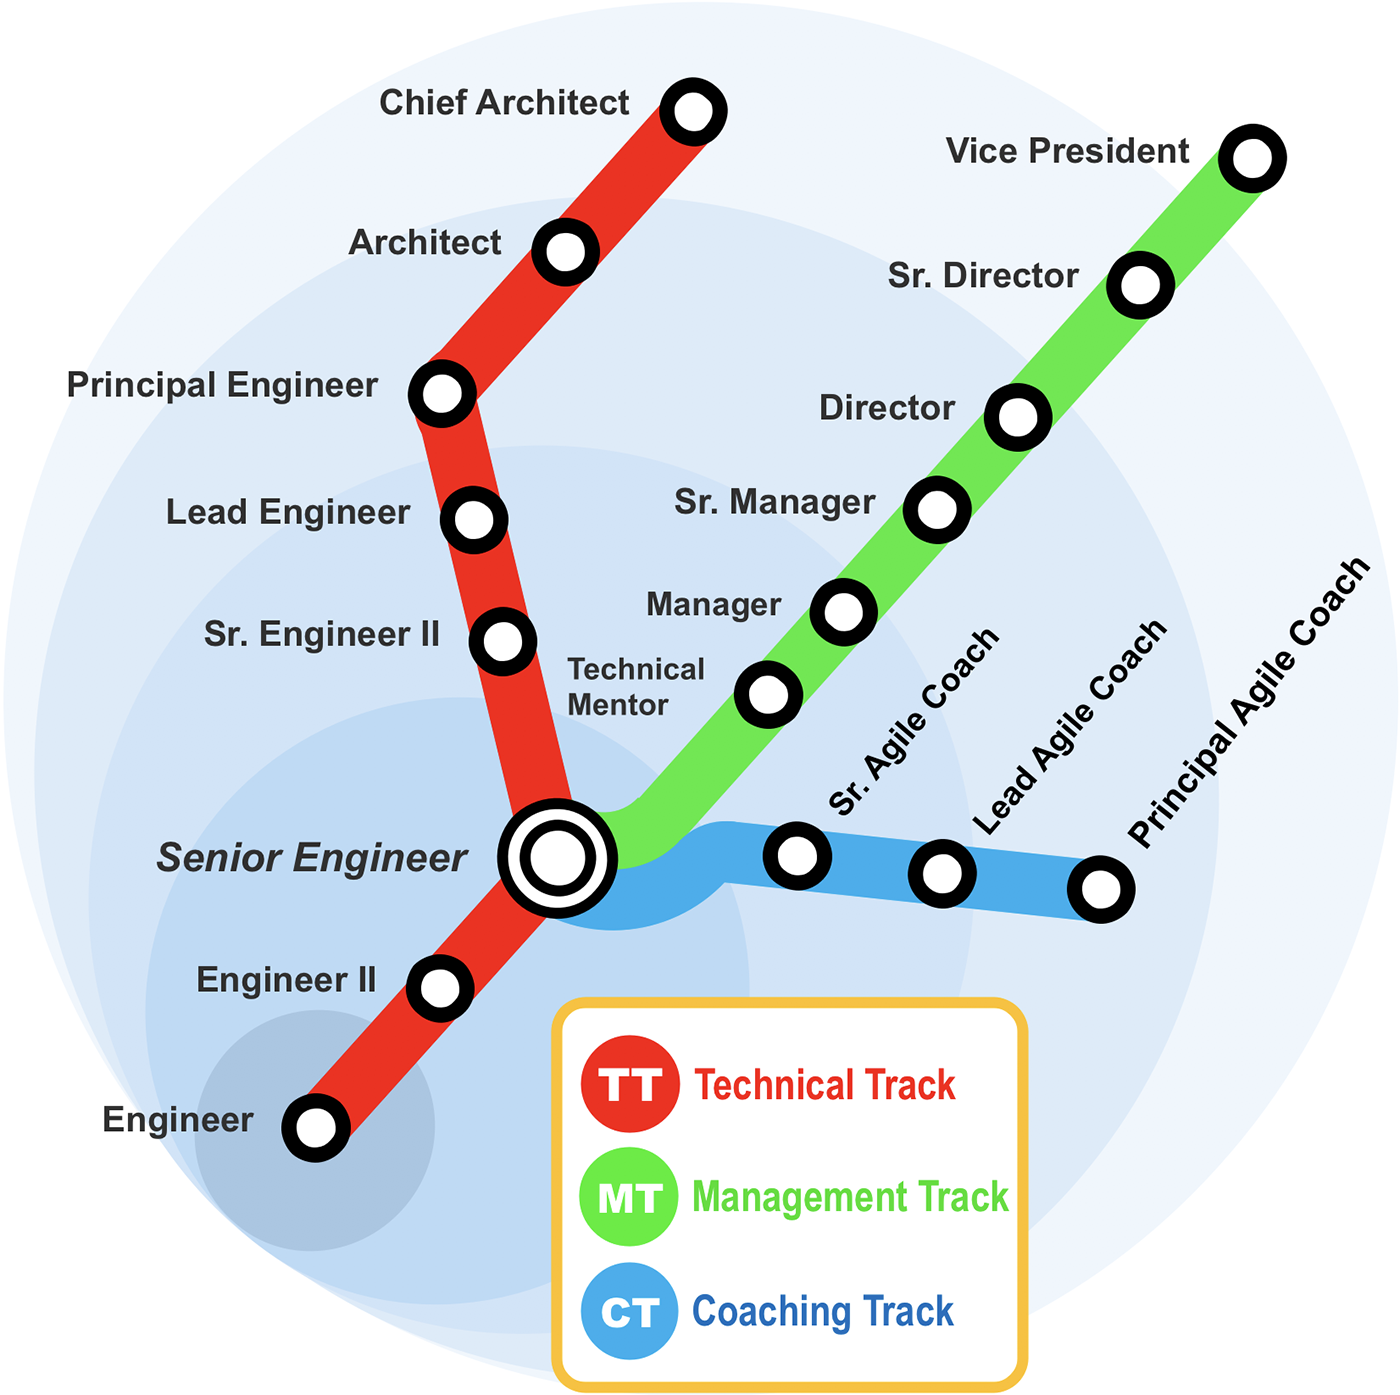 Read about Appian career tracks here: https://medium.com/appian-engineering/traveling-the-software-underground-89986